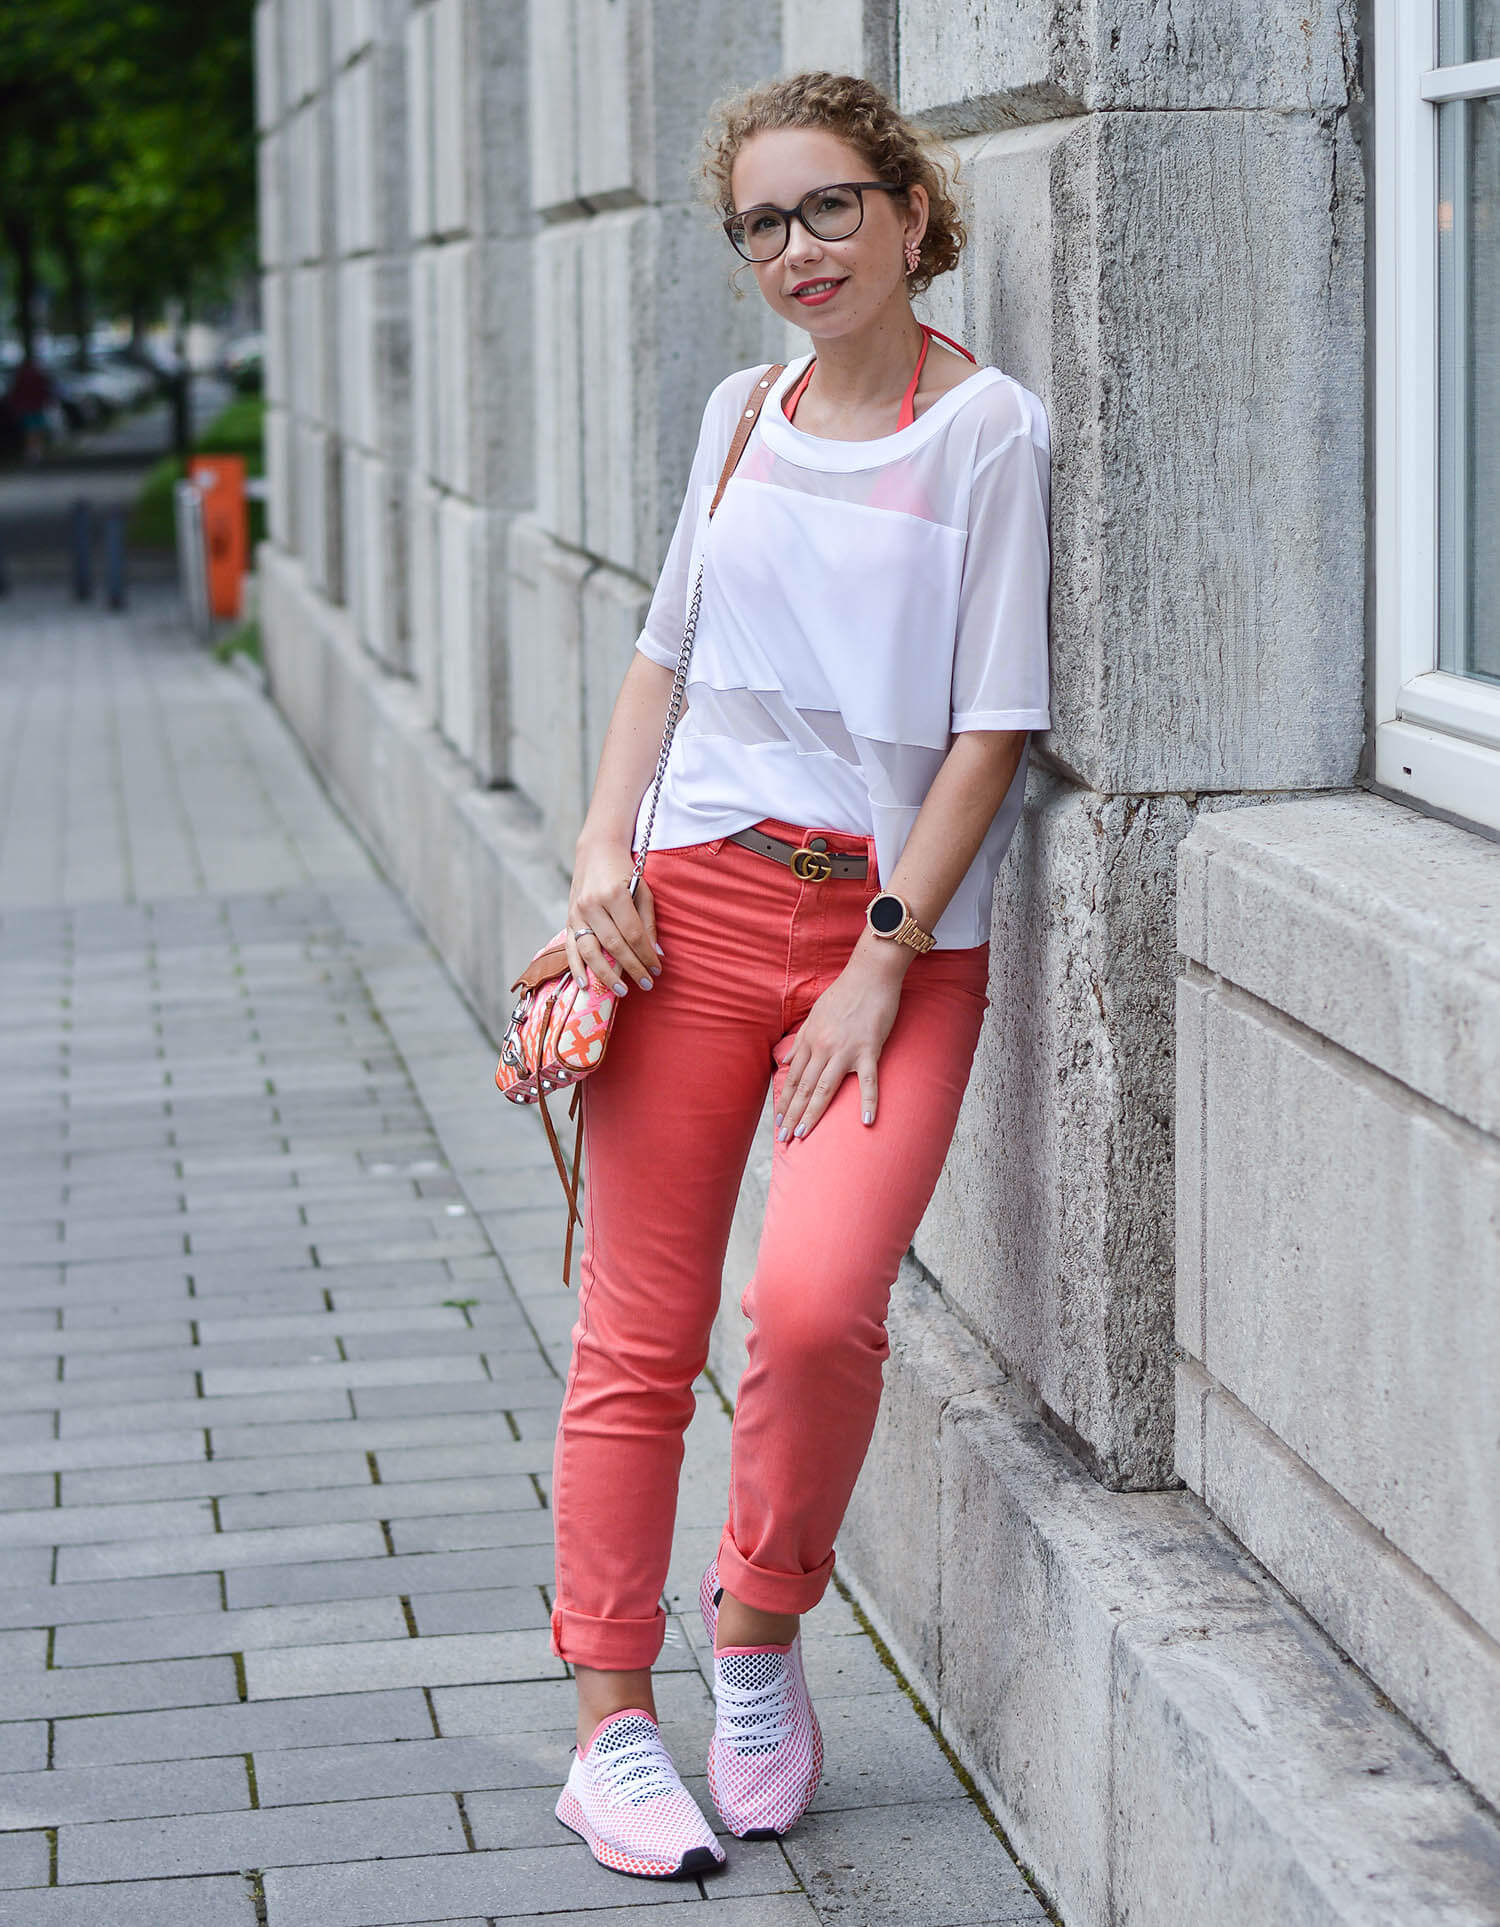 Coral-colored-denim-pants-adidas-deerupt-runner-rebecca-minkoff-bag-kationette-fashionblogger-nrw-outfit